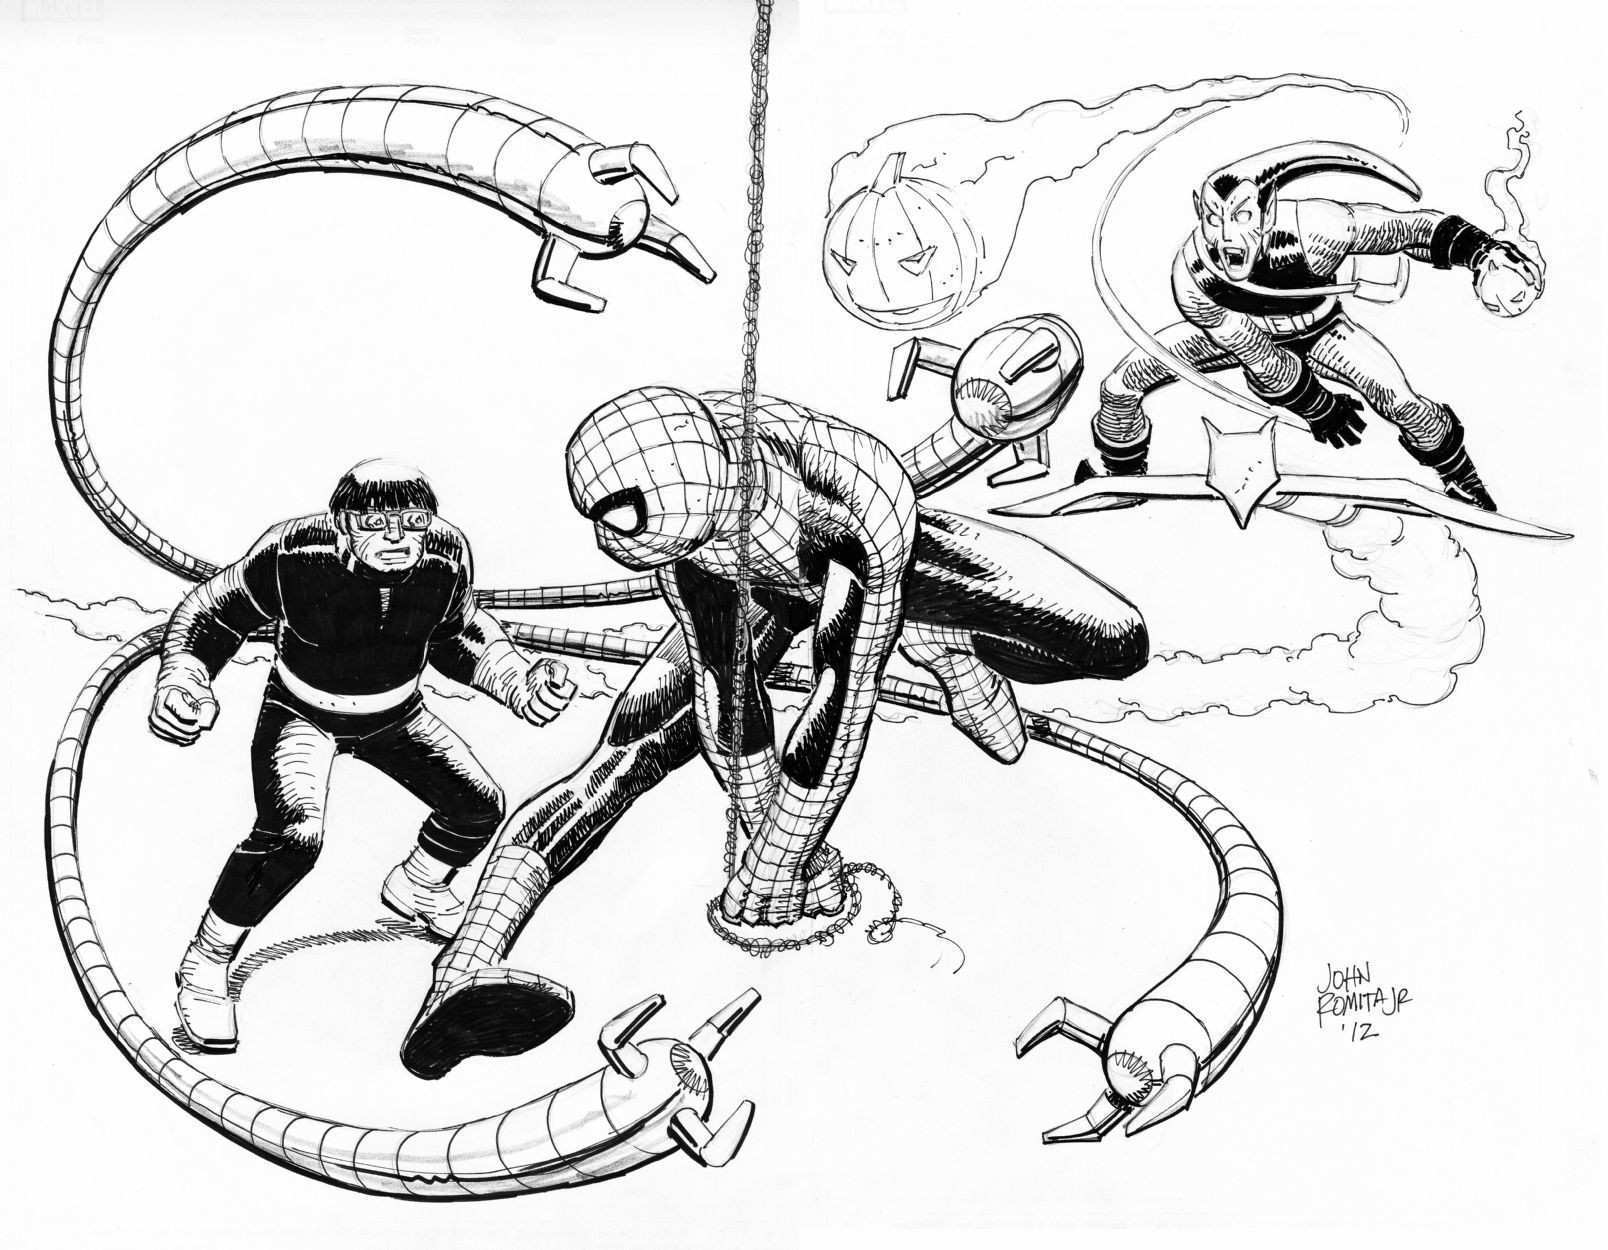 Inspirant Dessins à Imprimer Spiderman